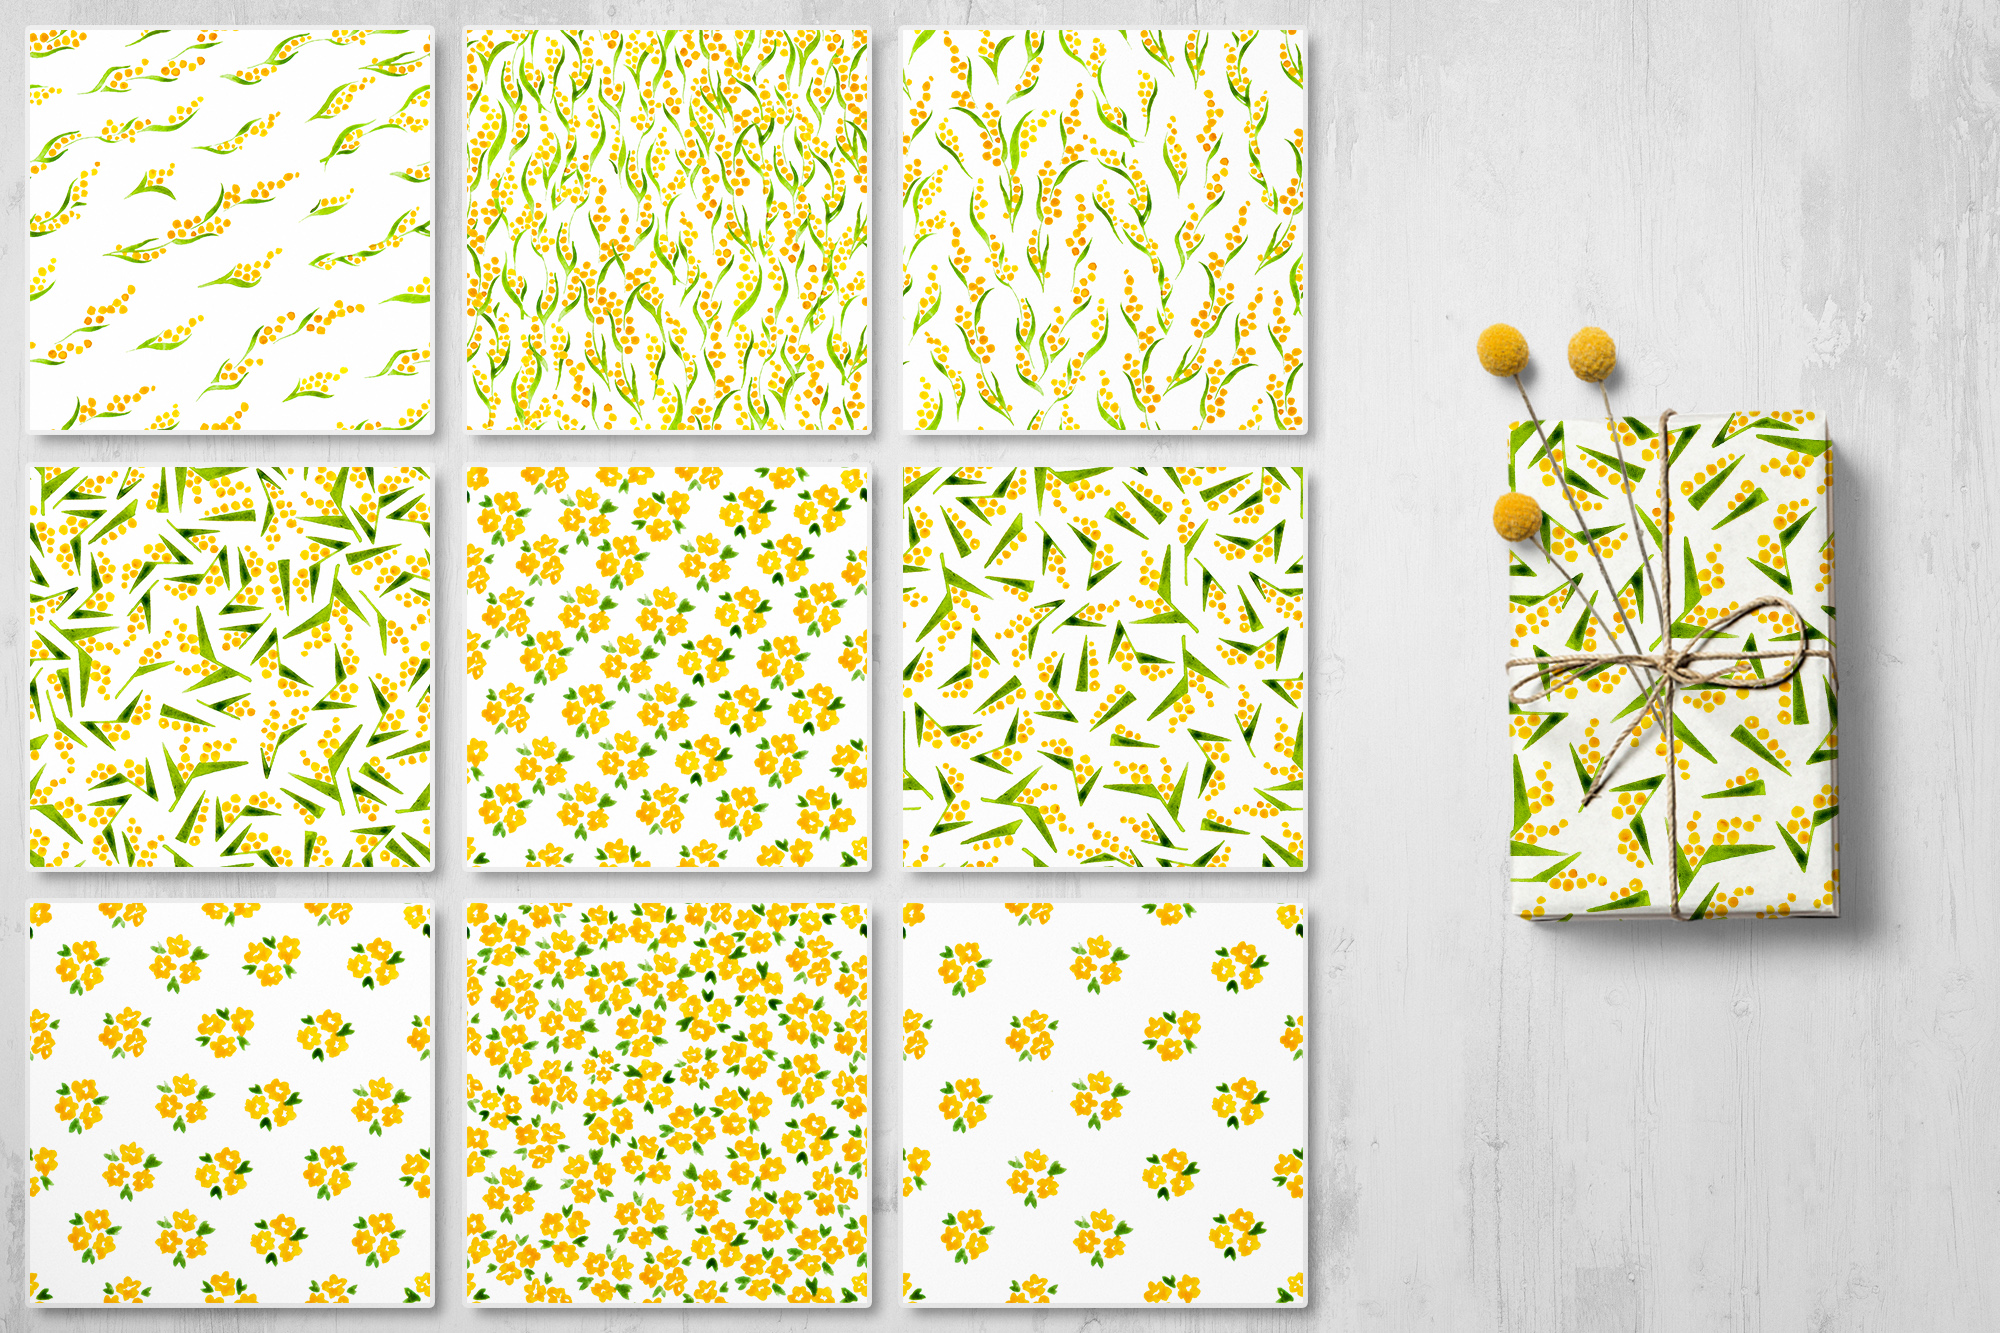 Mille Fleur - 36 watercolor patterns example image 6